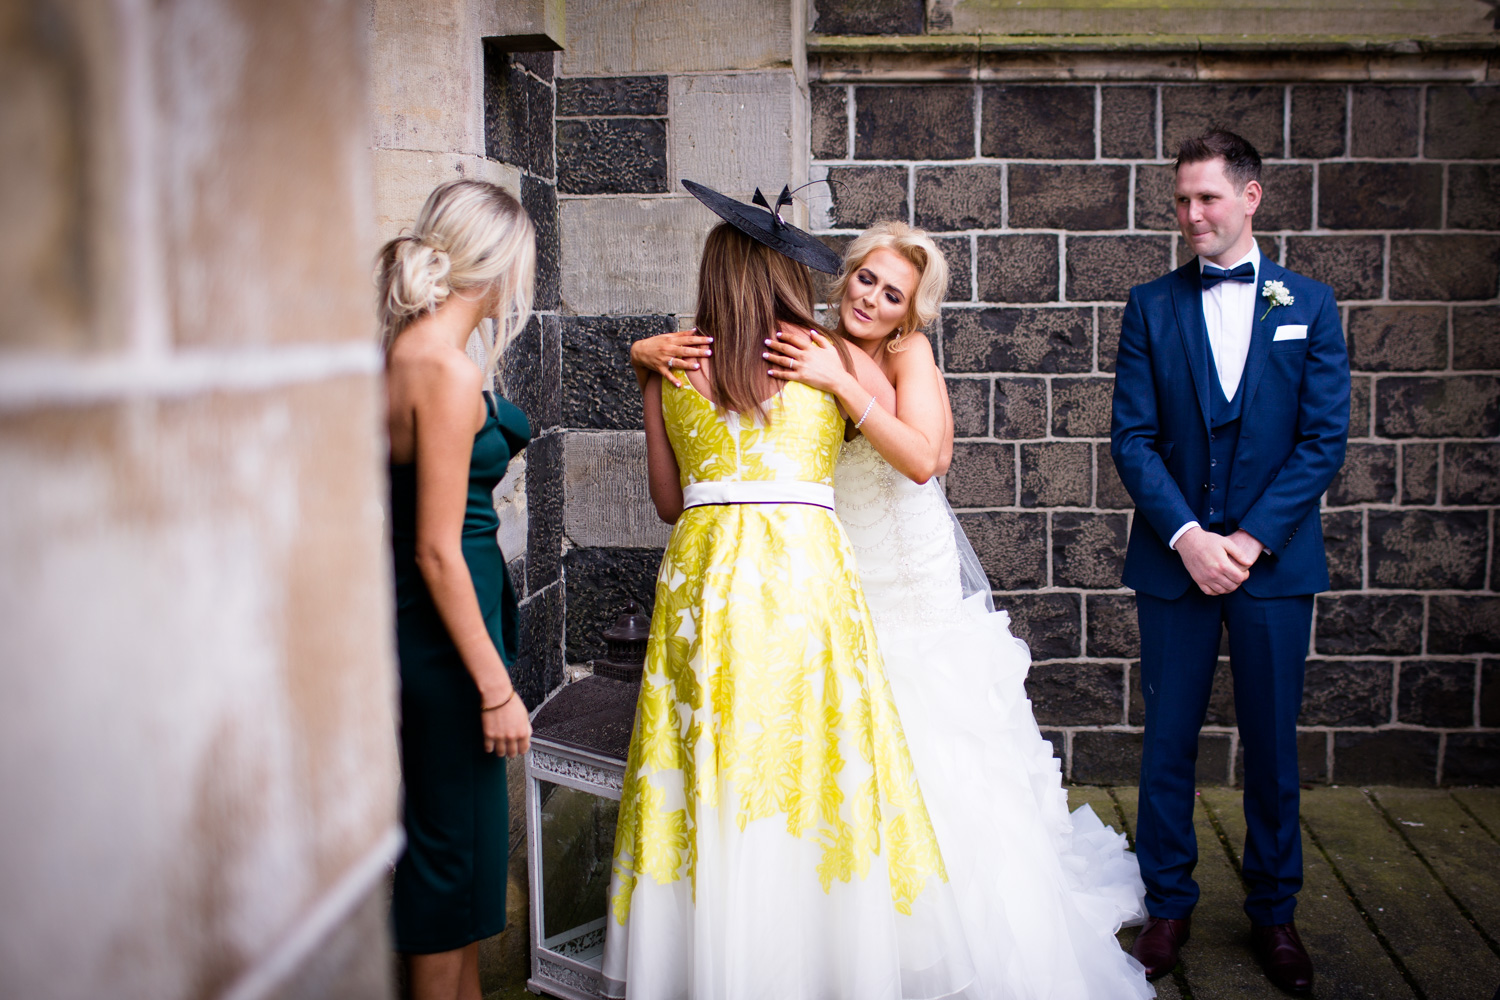 Mark_Barnes_wedding_photographer_Northern_Ireland_Wedding_photography_Carlingford_Four_Seasons_Wedding-28.jpg